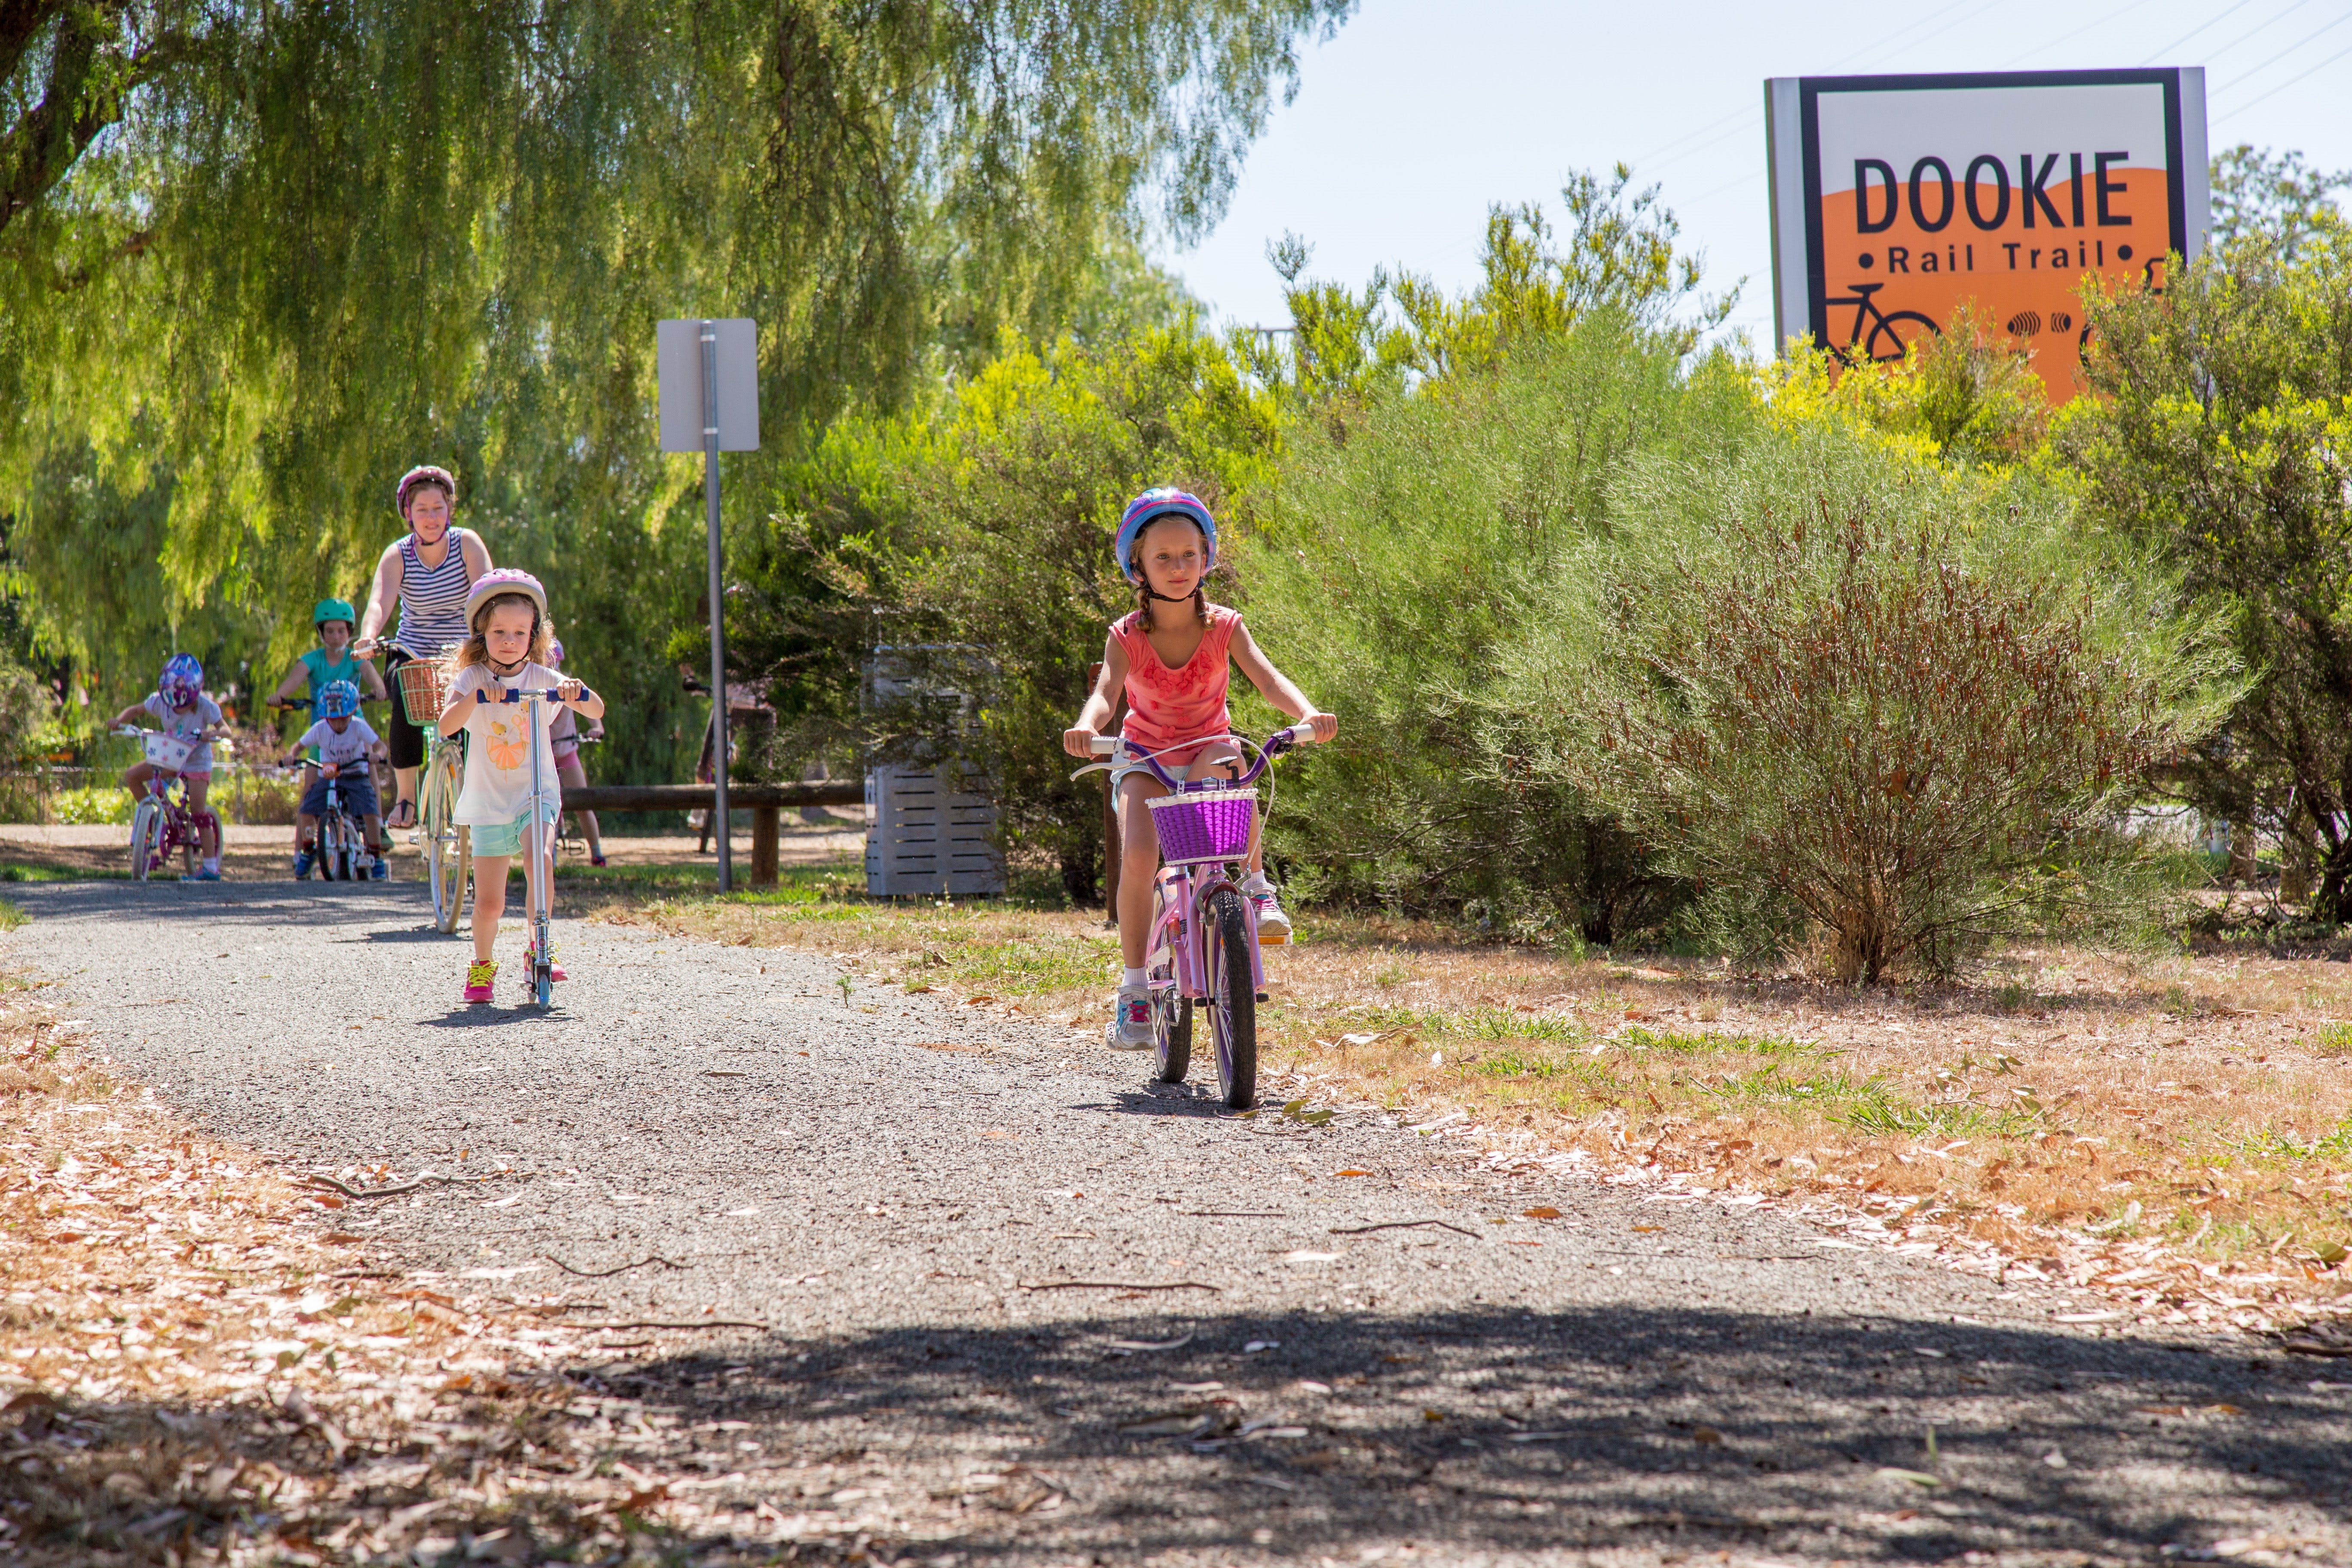 Dookie Rail Trail - Accommodation Perth